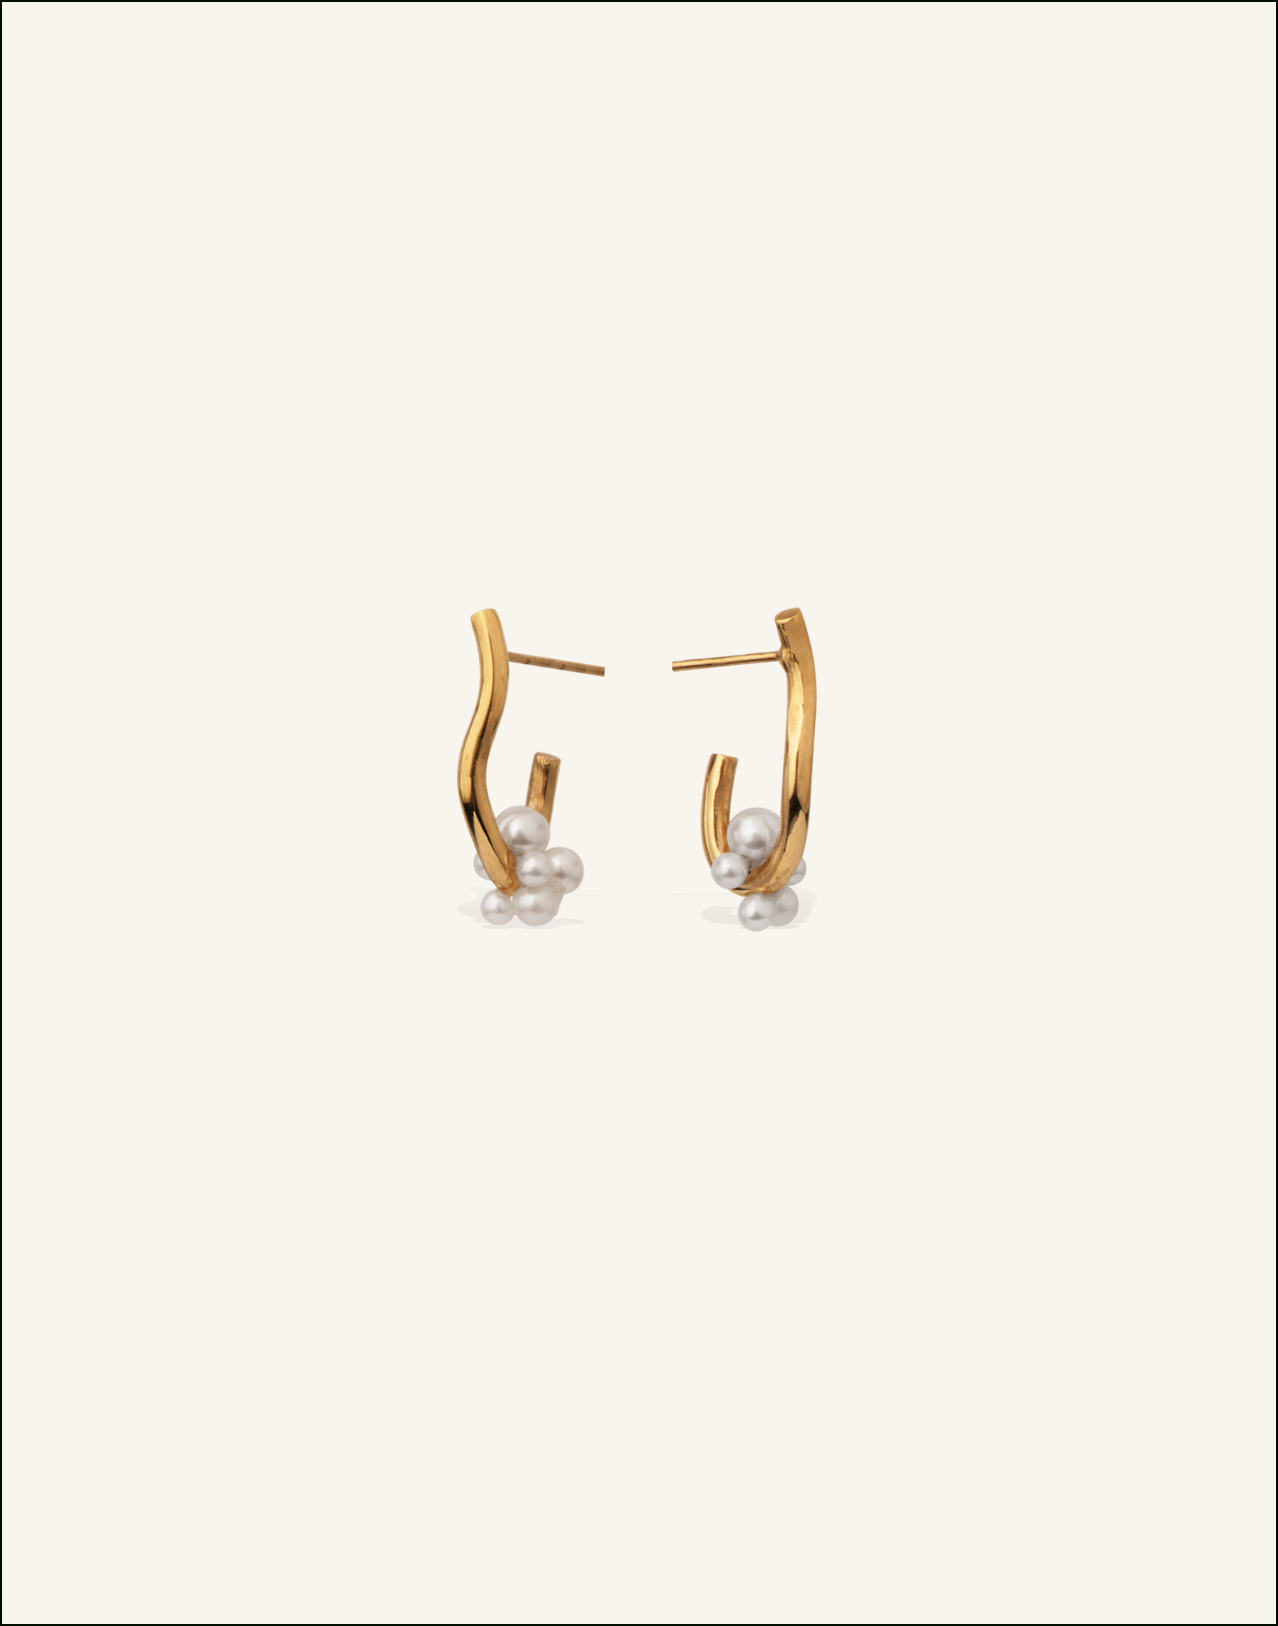 Completedworks-Earrings-Riot-I-2-1.jpg